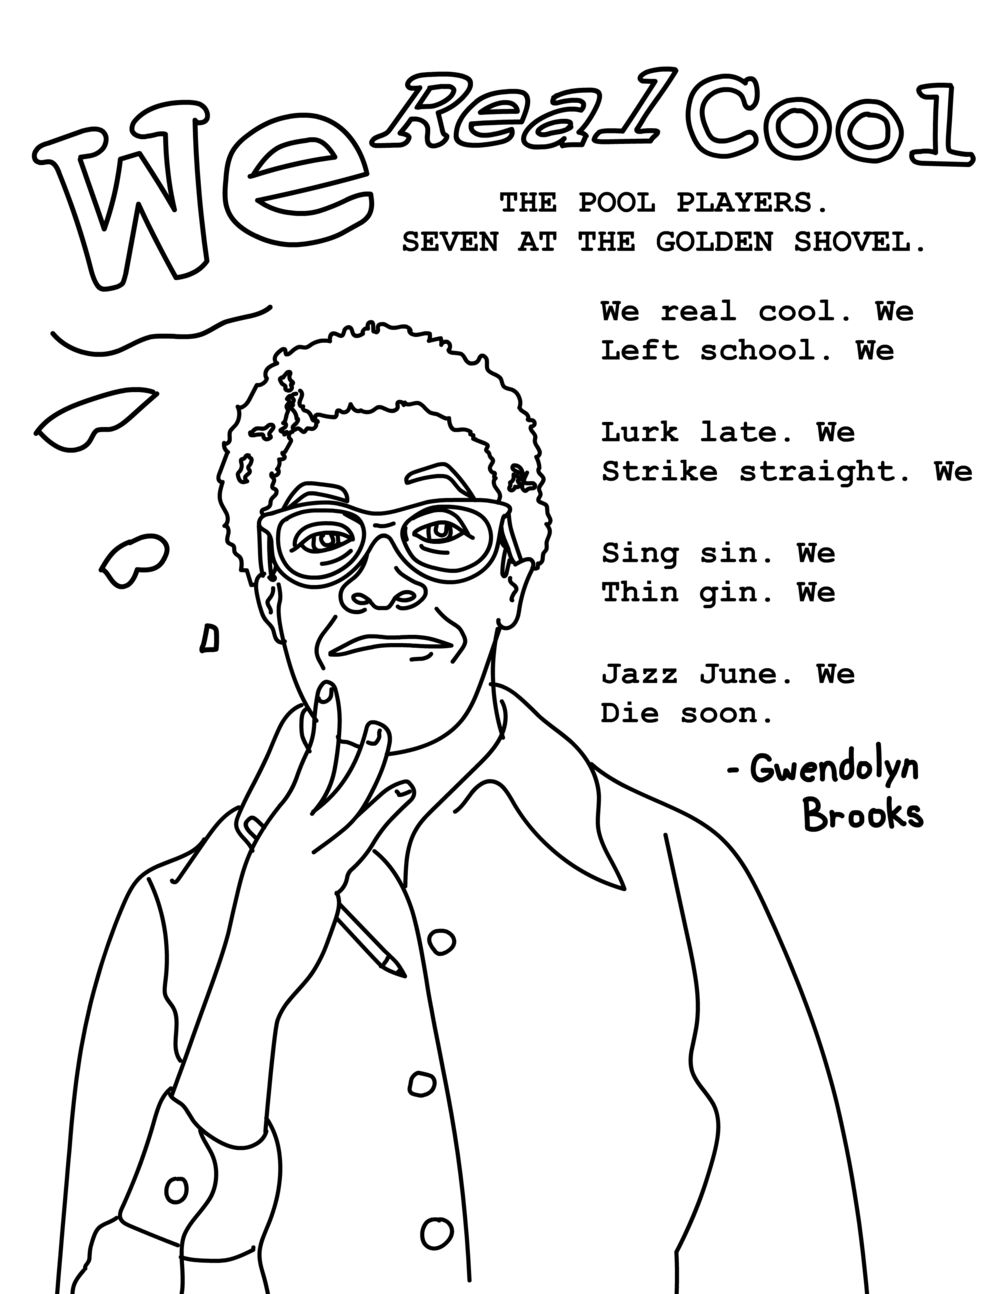 Gwendolyn Brooks Coloring Page 1 - bria royal - white bg.png